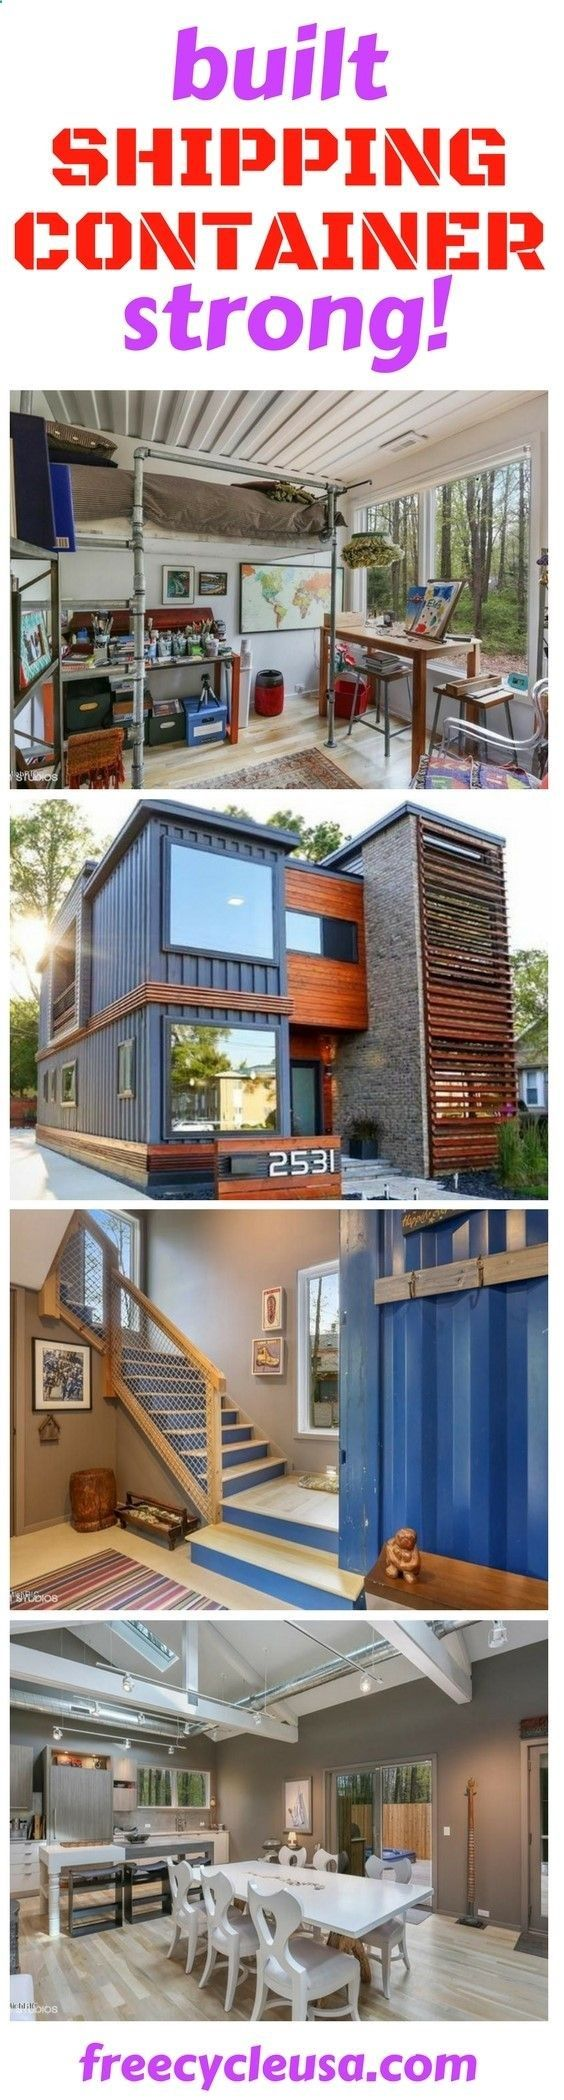 Best Kitchen Gallery: 416 Best Shipping Container Home Images On Pinterest Shipping of Fallout Shelter Built From Shipping Containers on rachelxblog.com